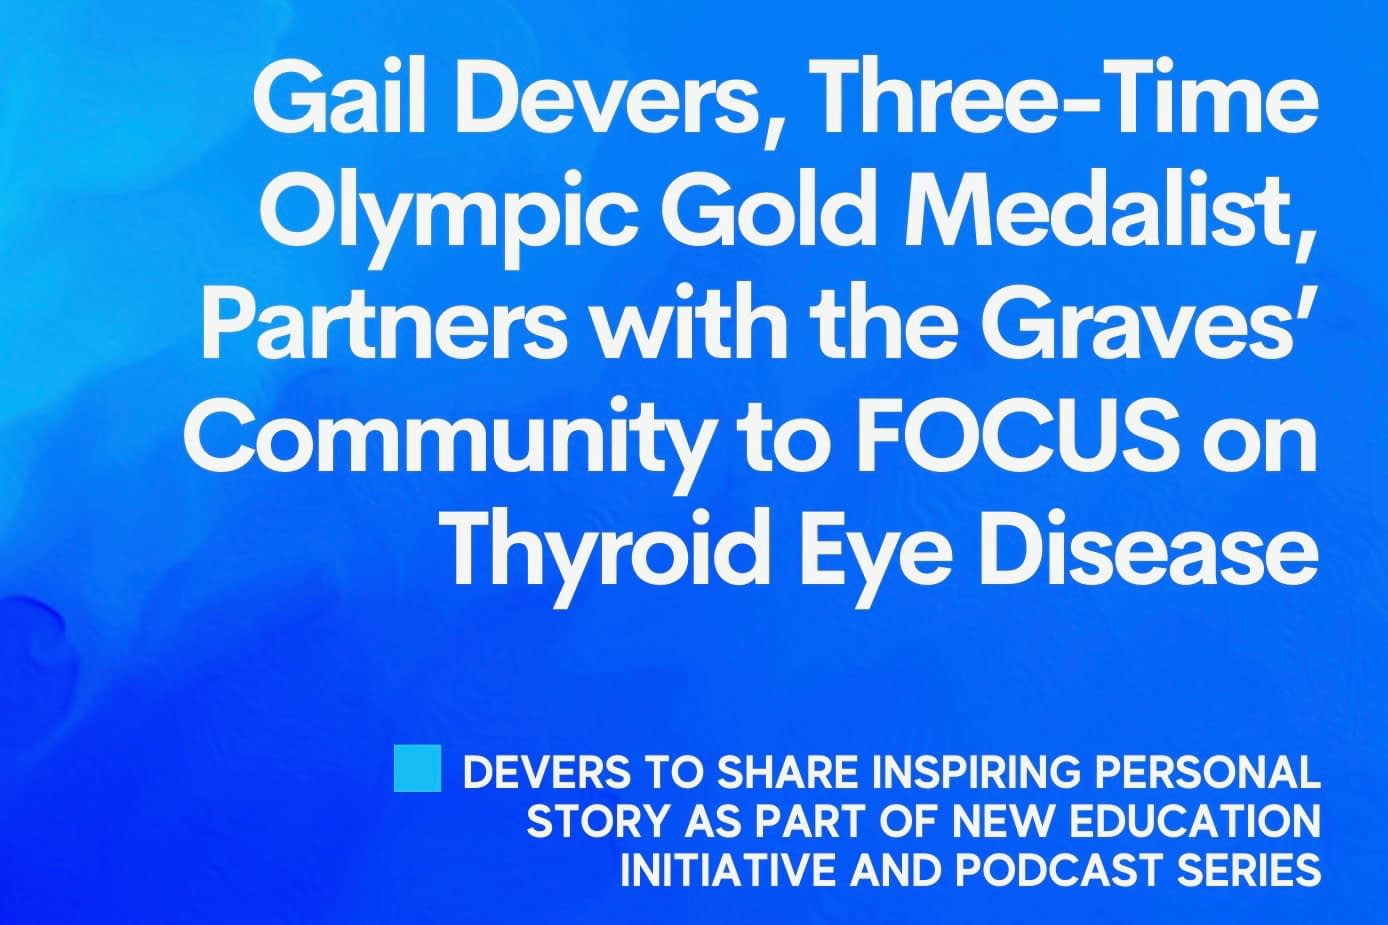 Gail Devers Partners with the Graves' Community to Focus on Thyroid Eye Disease